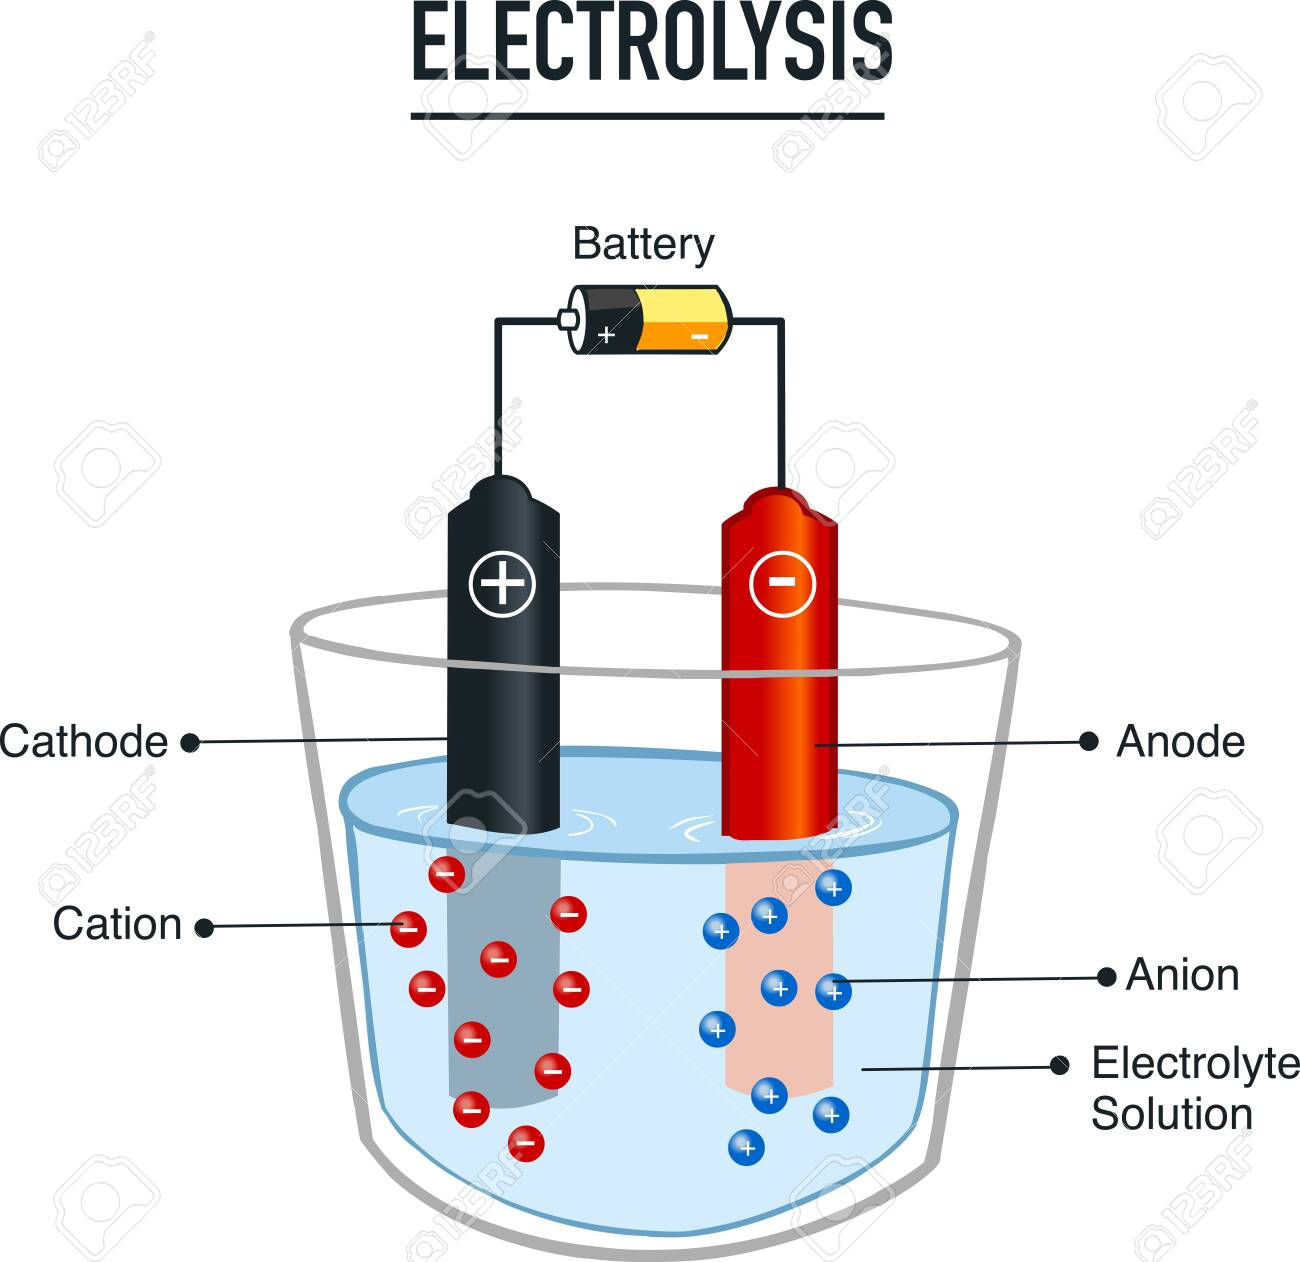 Electrolysis process useful for education in schools vector illustration - 136786040